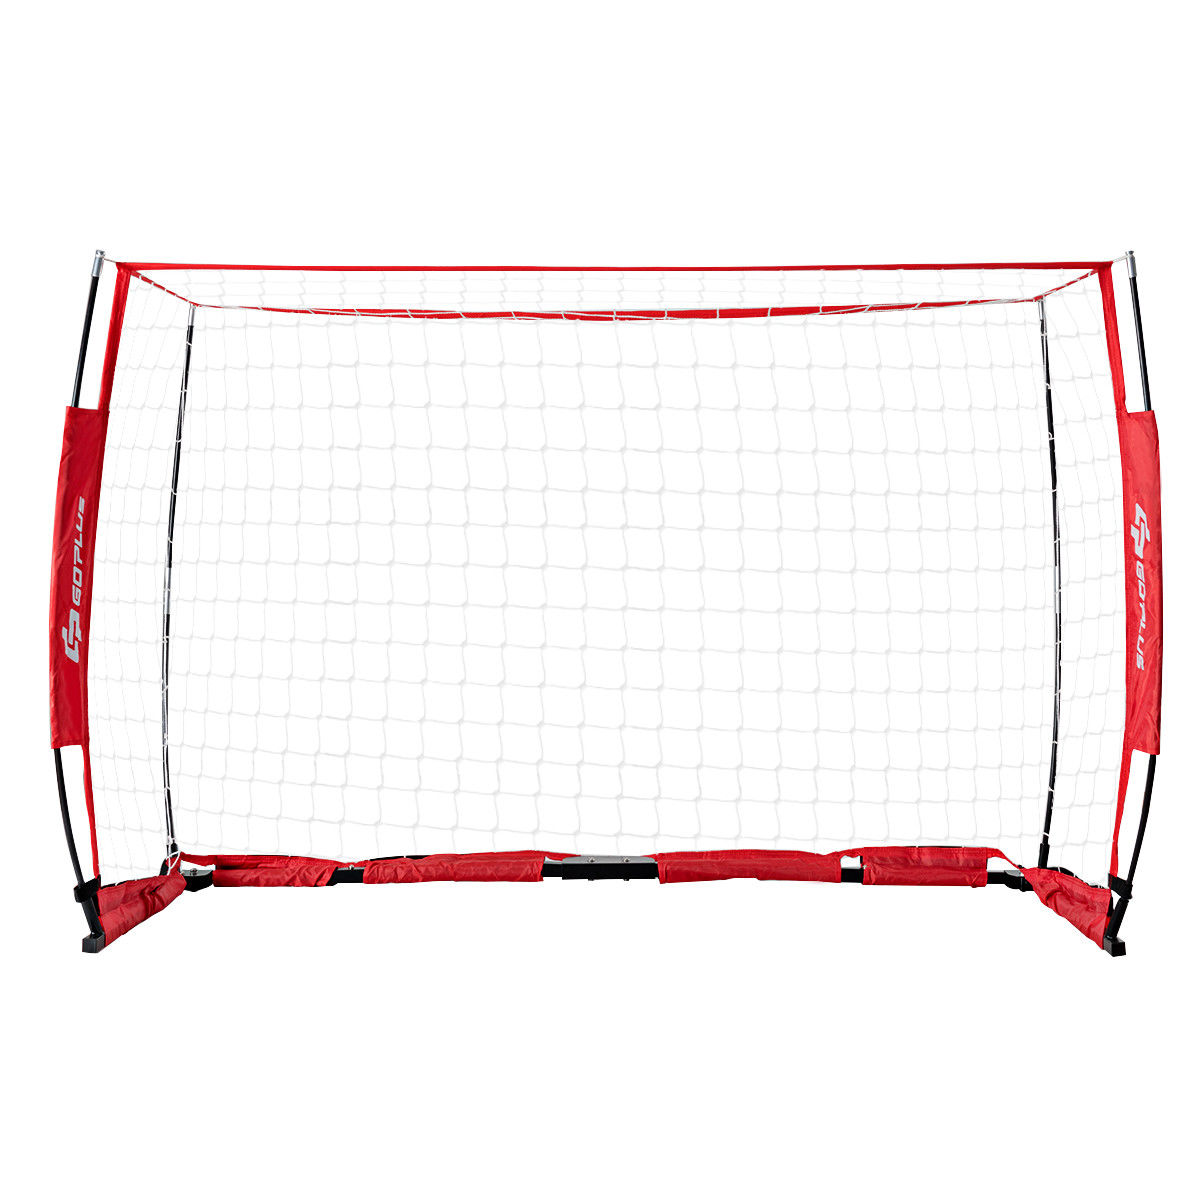 6' x 4' Soccer Goal Durable Bow Style Net Quick Setup Soccer Training w/ Bag